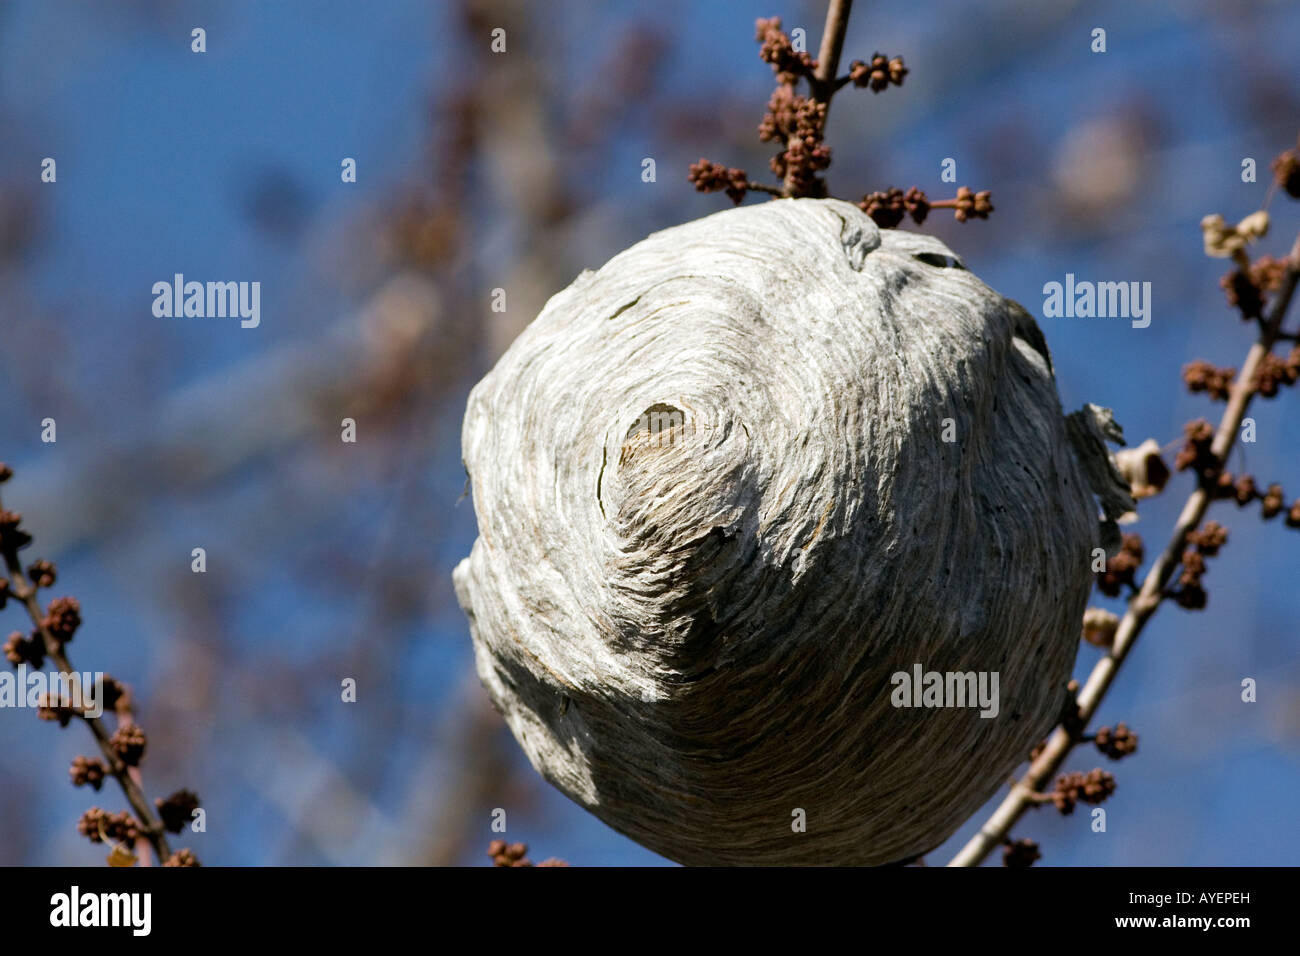 Wasp nest hanging from a tree branch in Boise Idaho - Stock Image